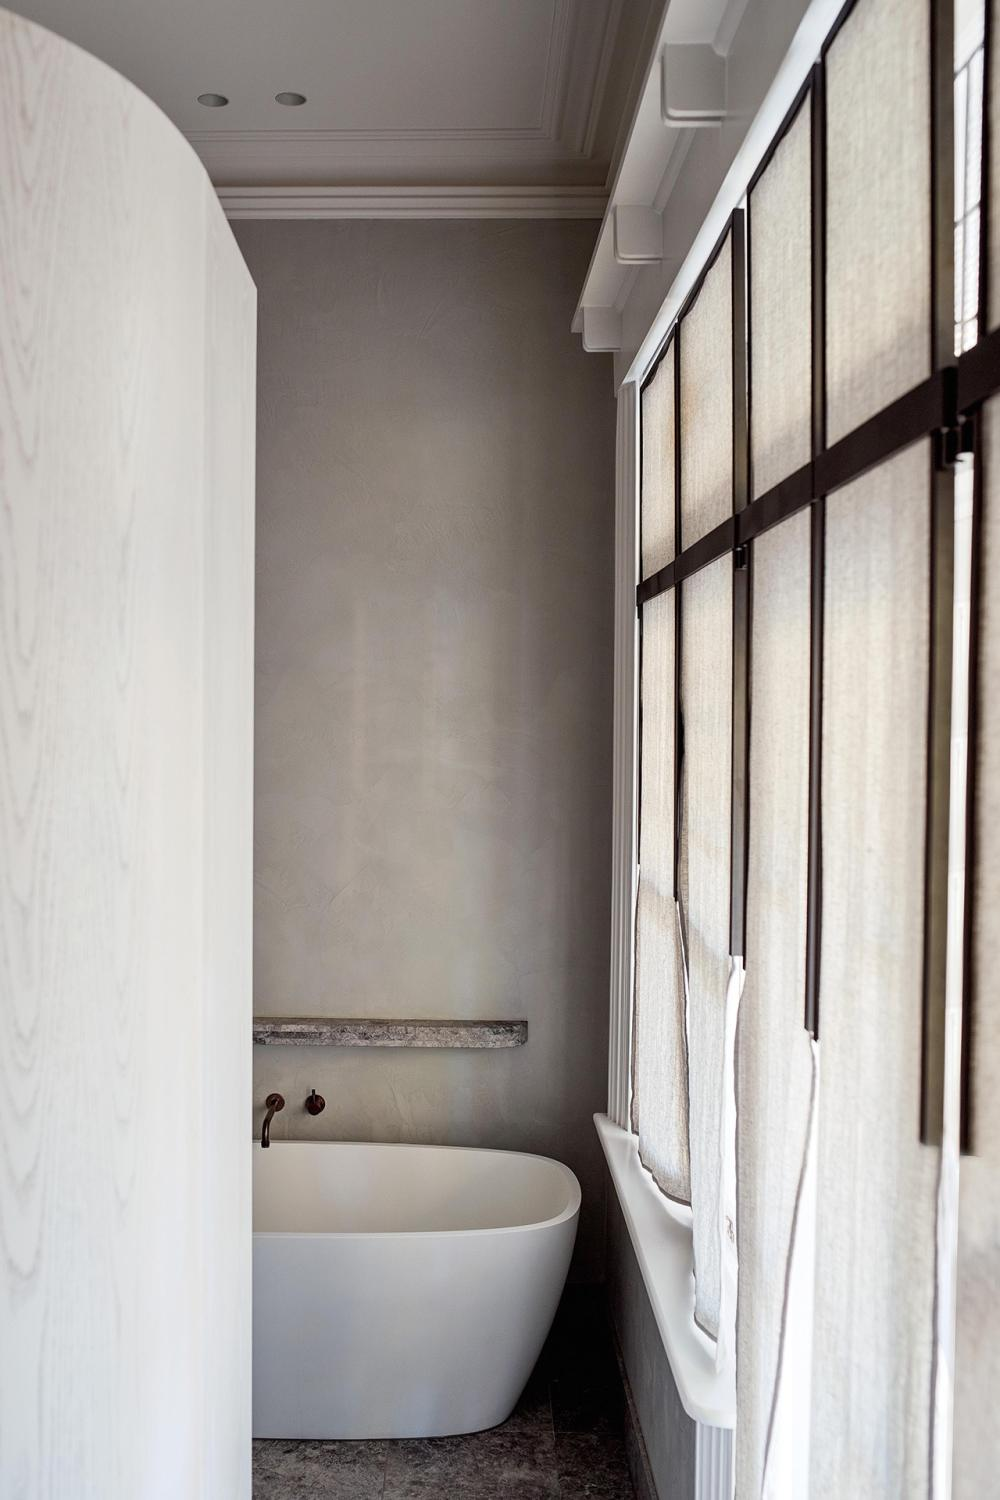 House tour: an elegant heritage Melbourne home restored with a moody colour palette-10.jpg